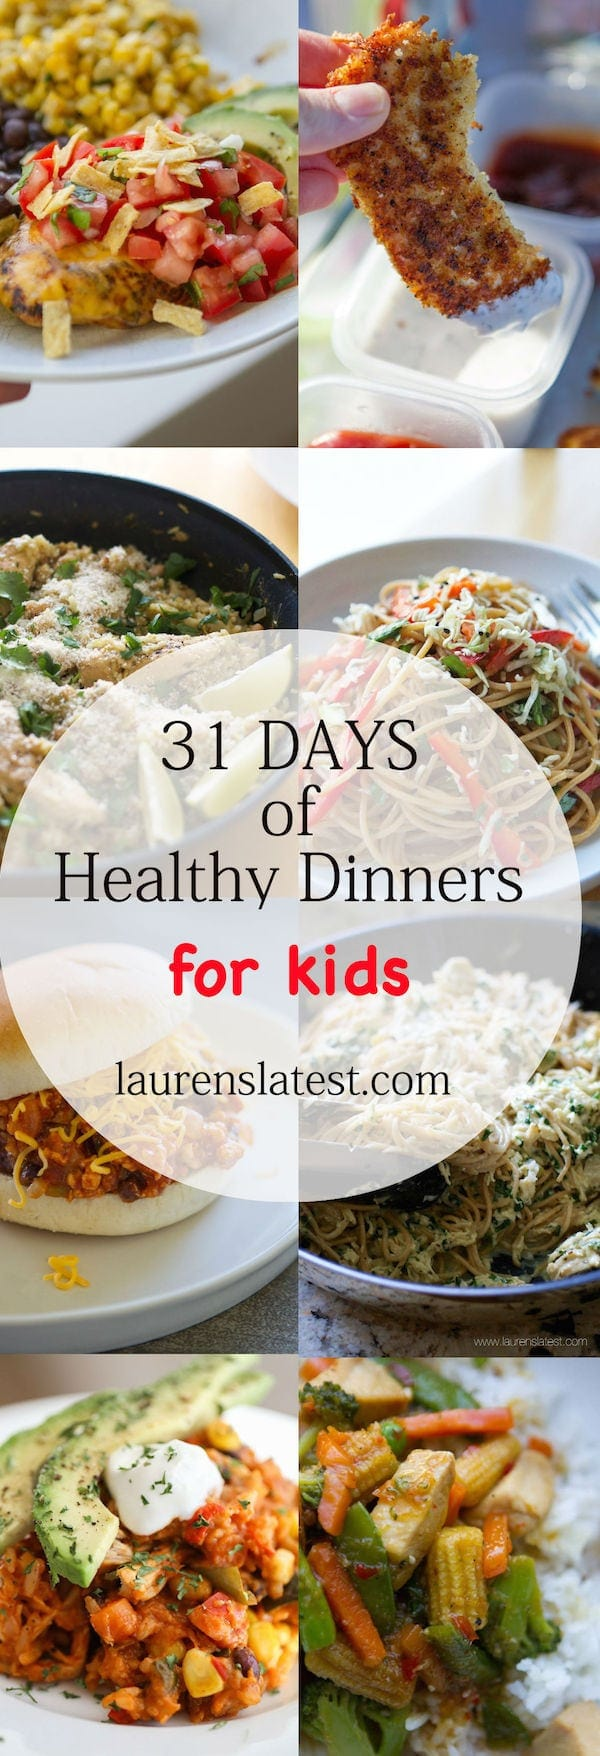 Healthy Dinner Ideas For One Month Lauren S Latest